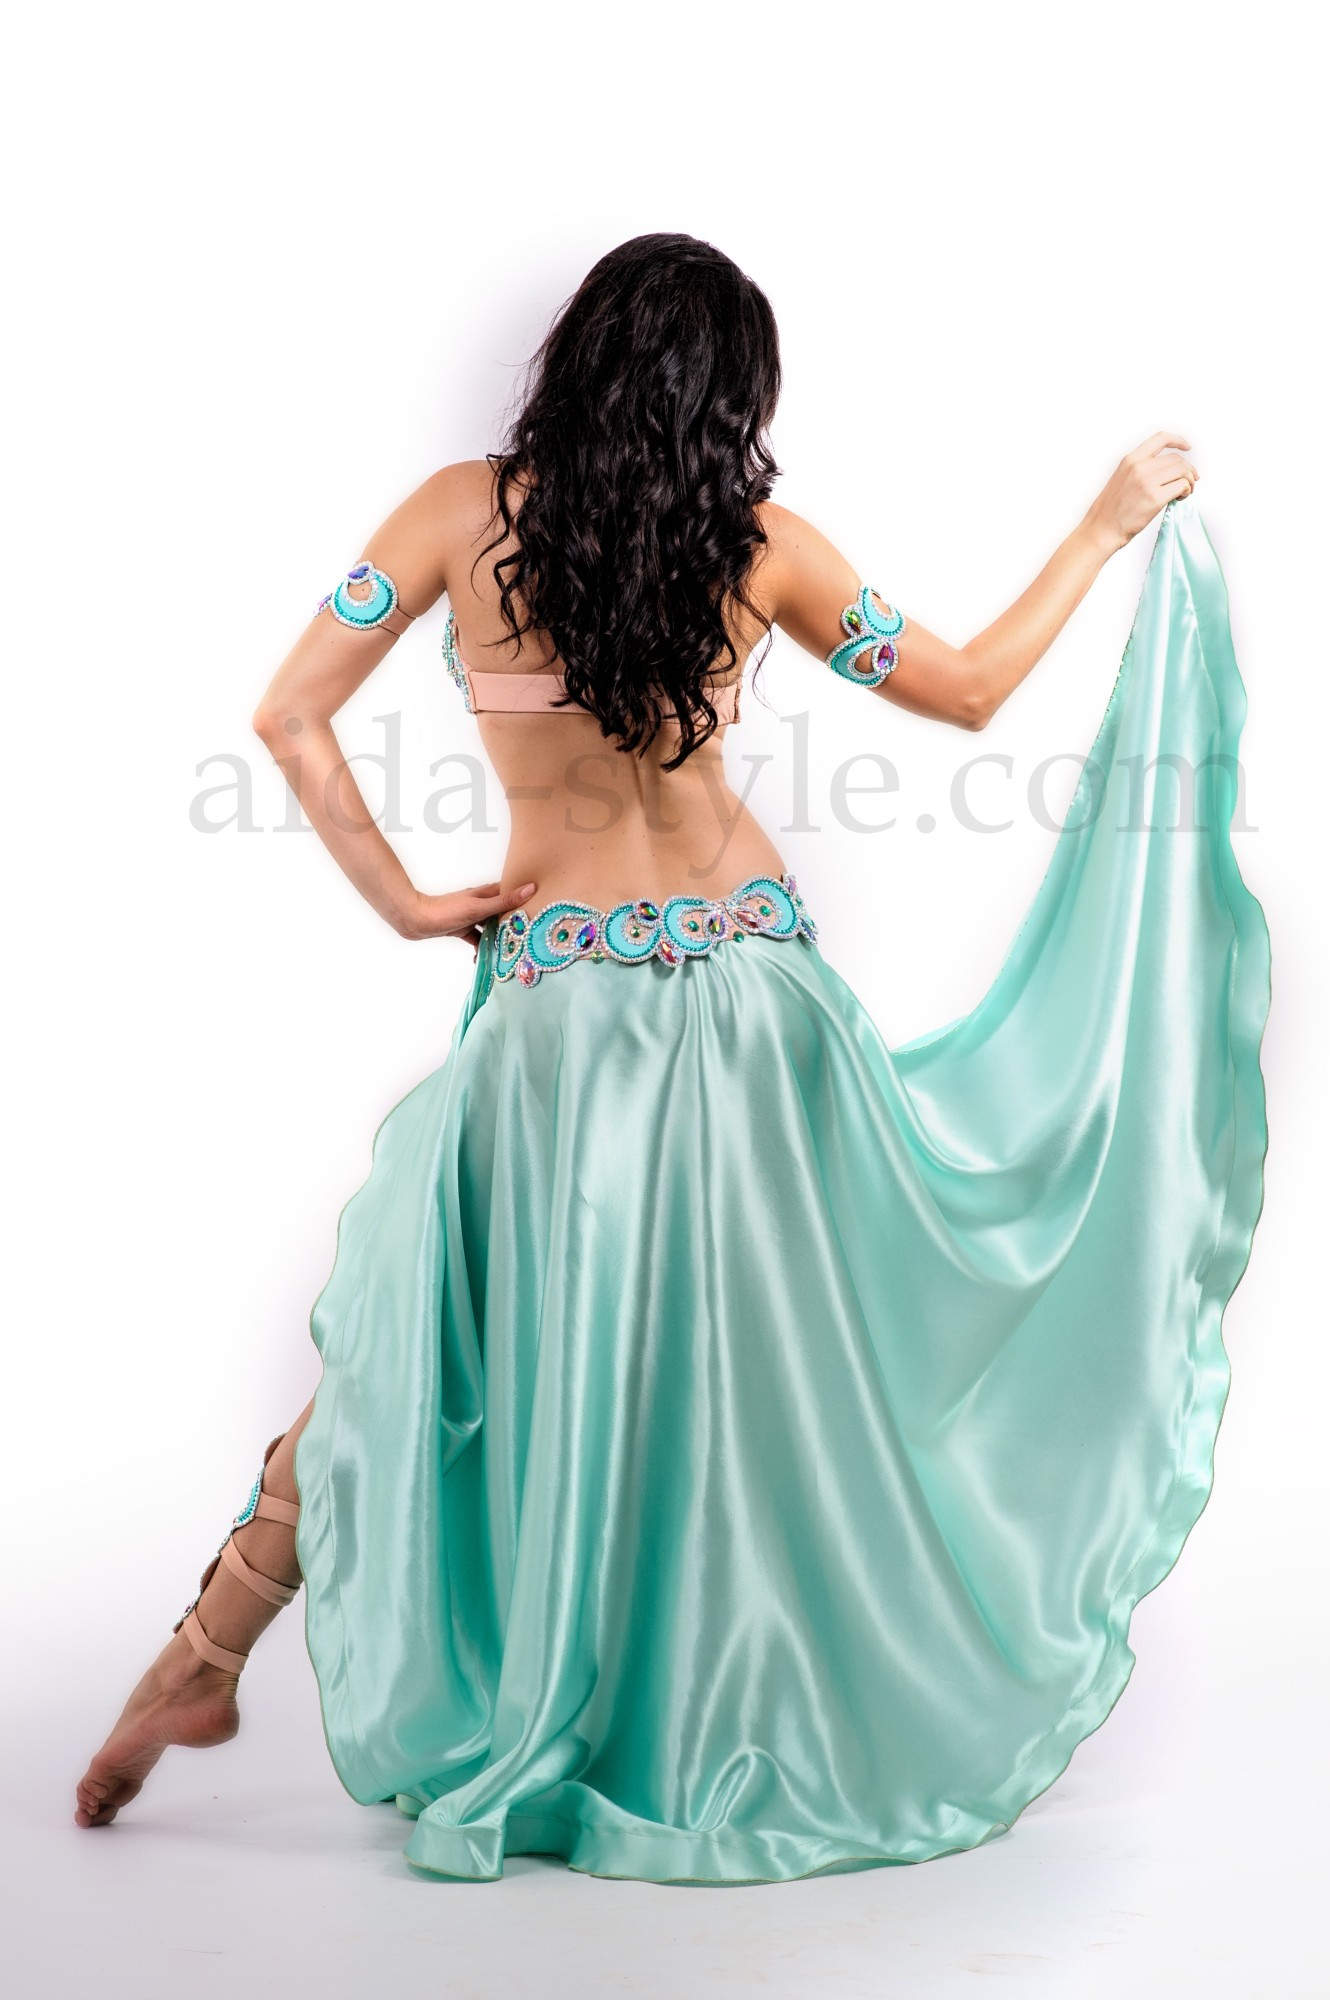 Professional belly dance costume in azure-blue color and turkish style decoration